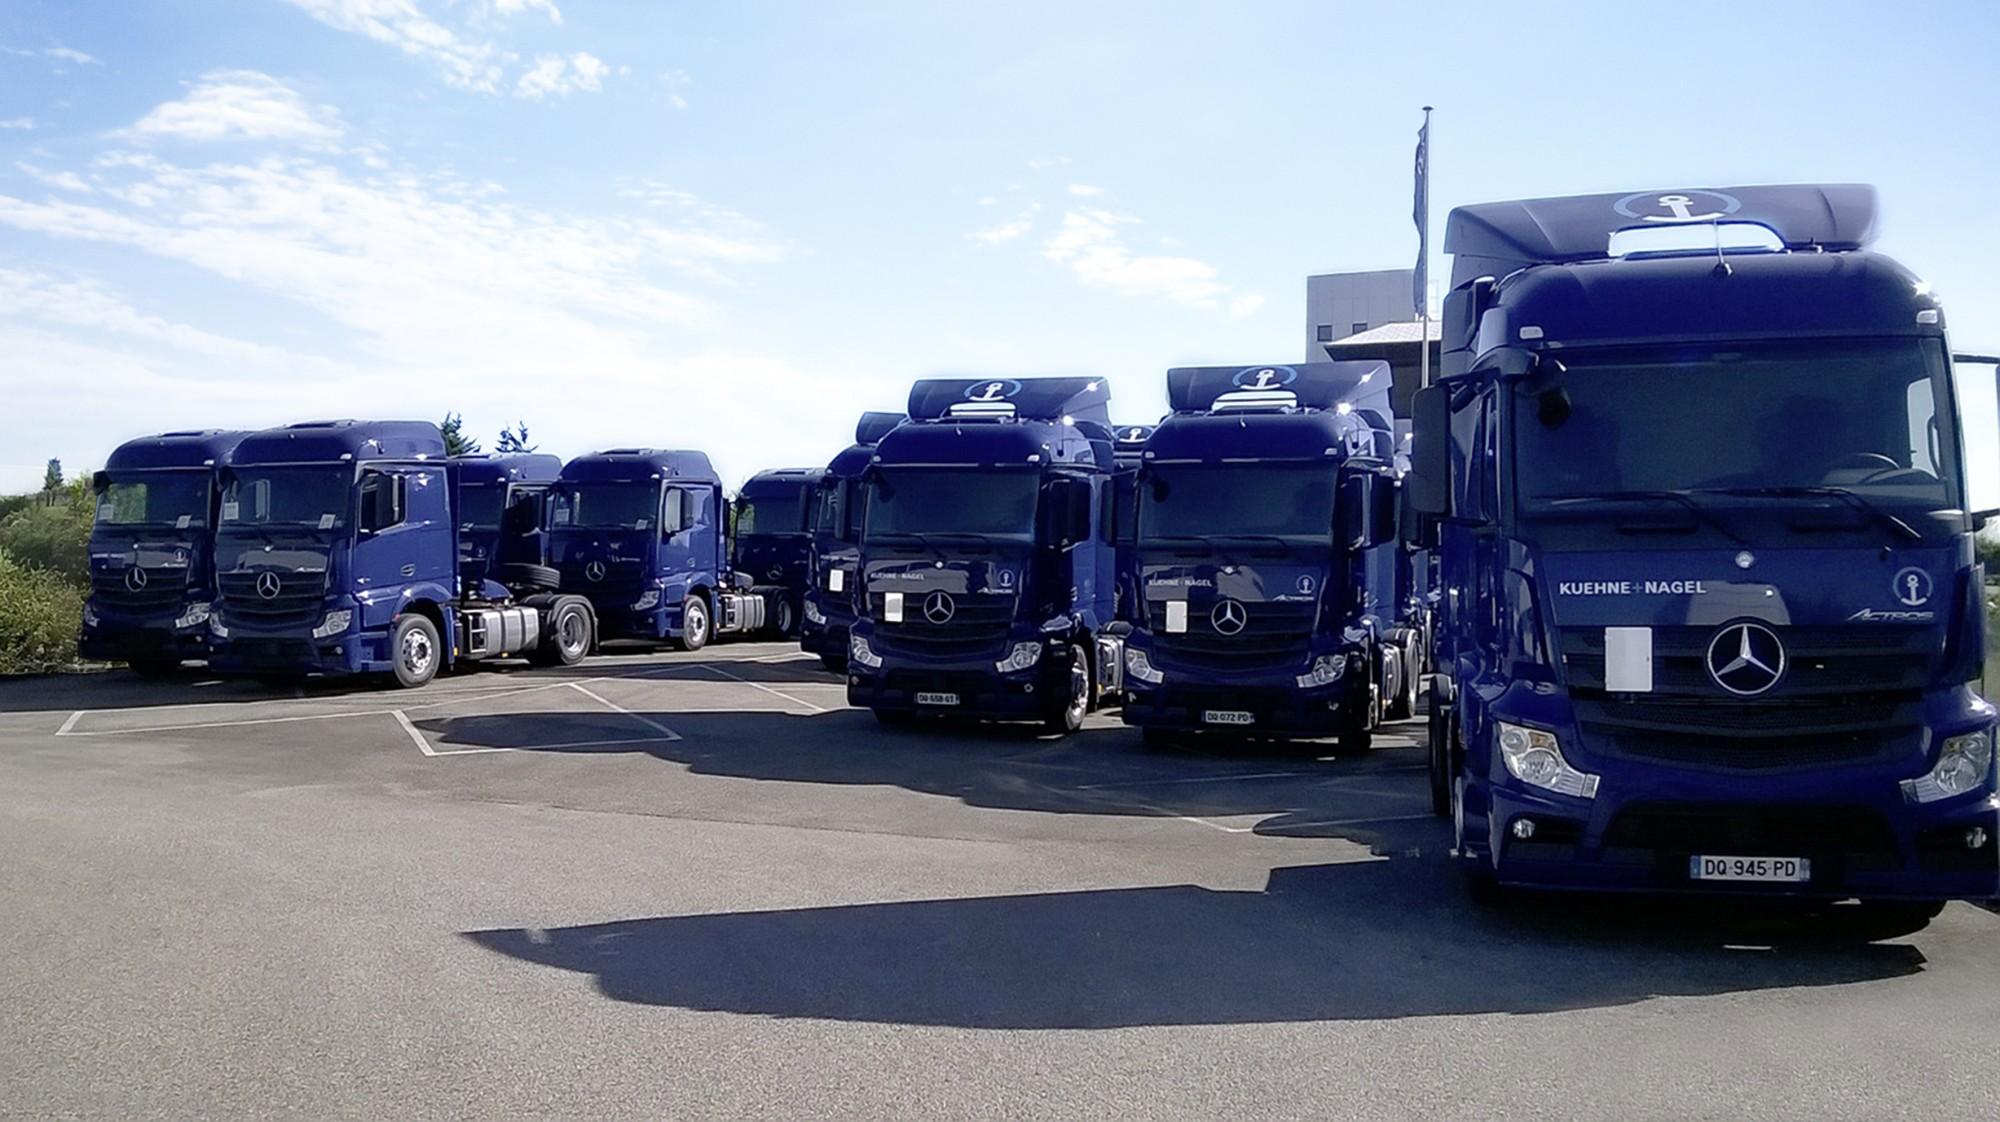 K Hne Nagel Bestelt 240 Mercedes Benz Trucks